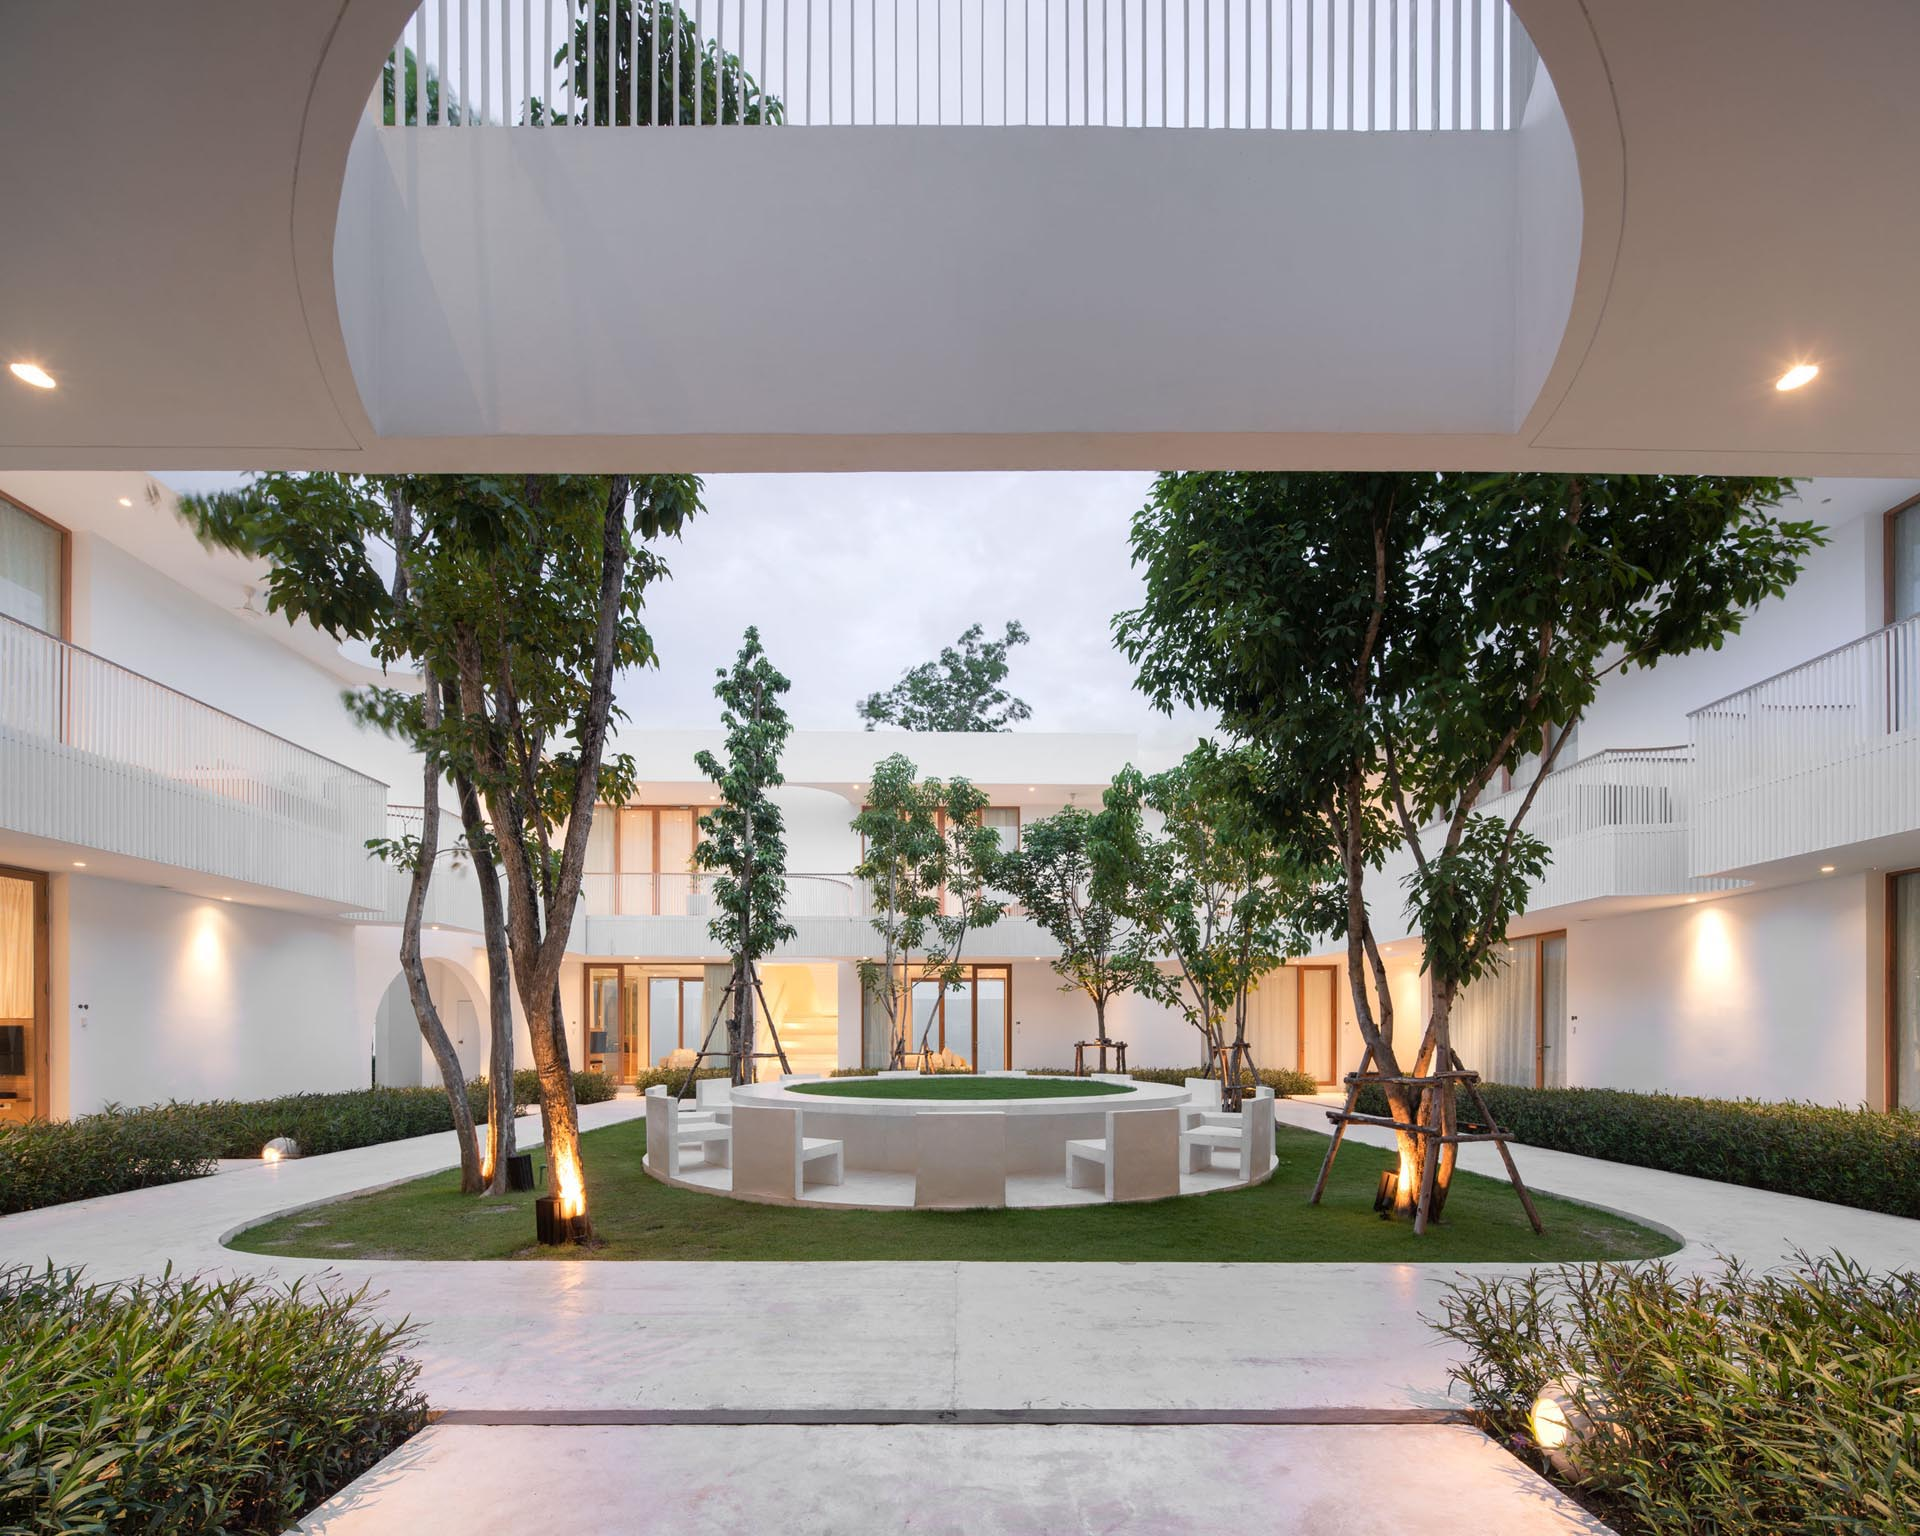 A modern hotel courtyard with outdoor chairs arranged in a circle.